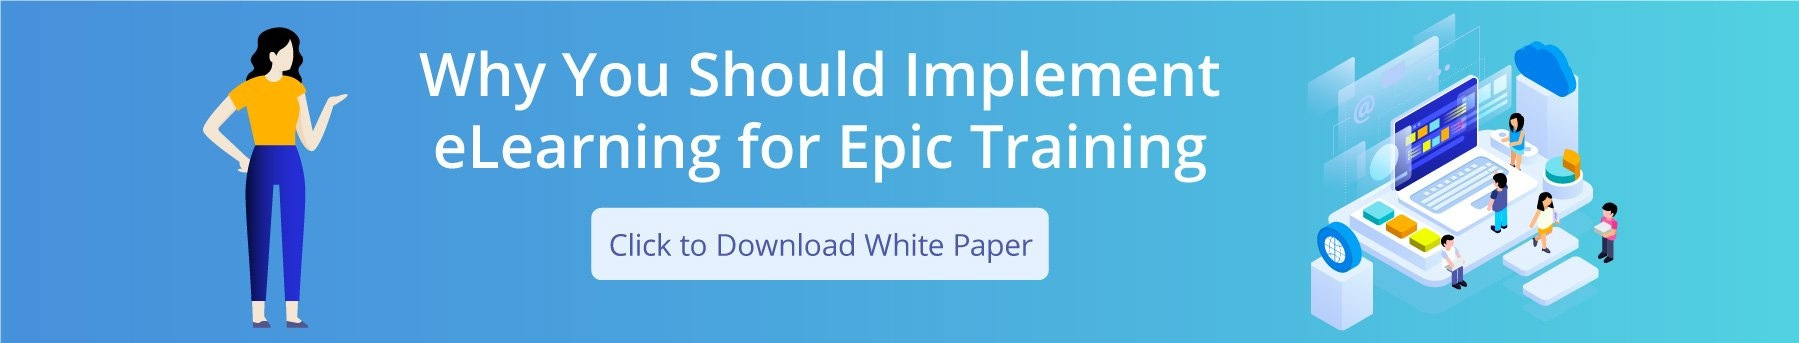 Why You Should Implement eLearning for Epic Training CTA